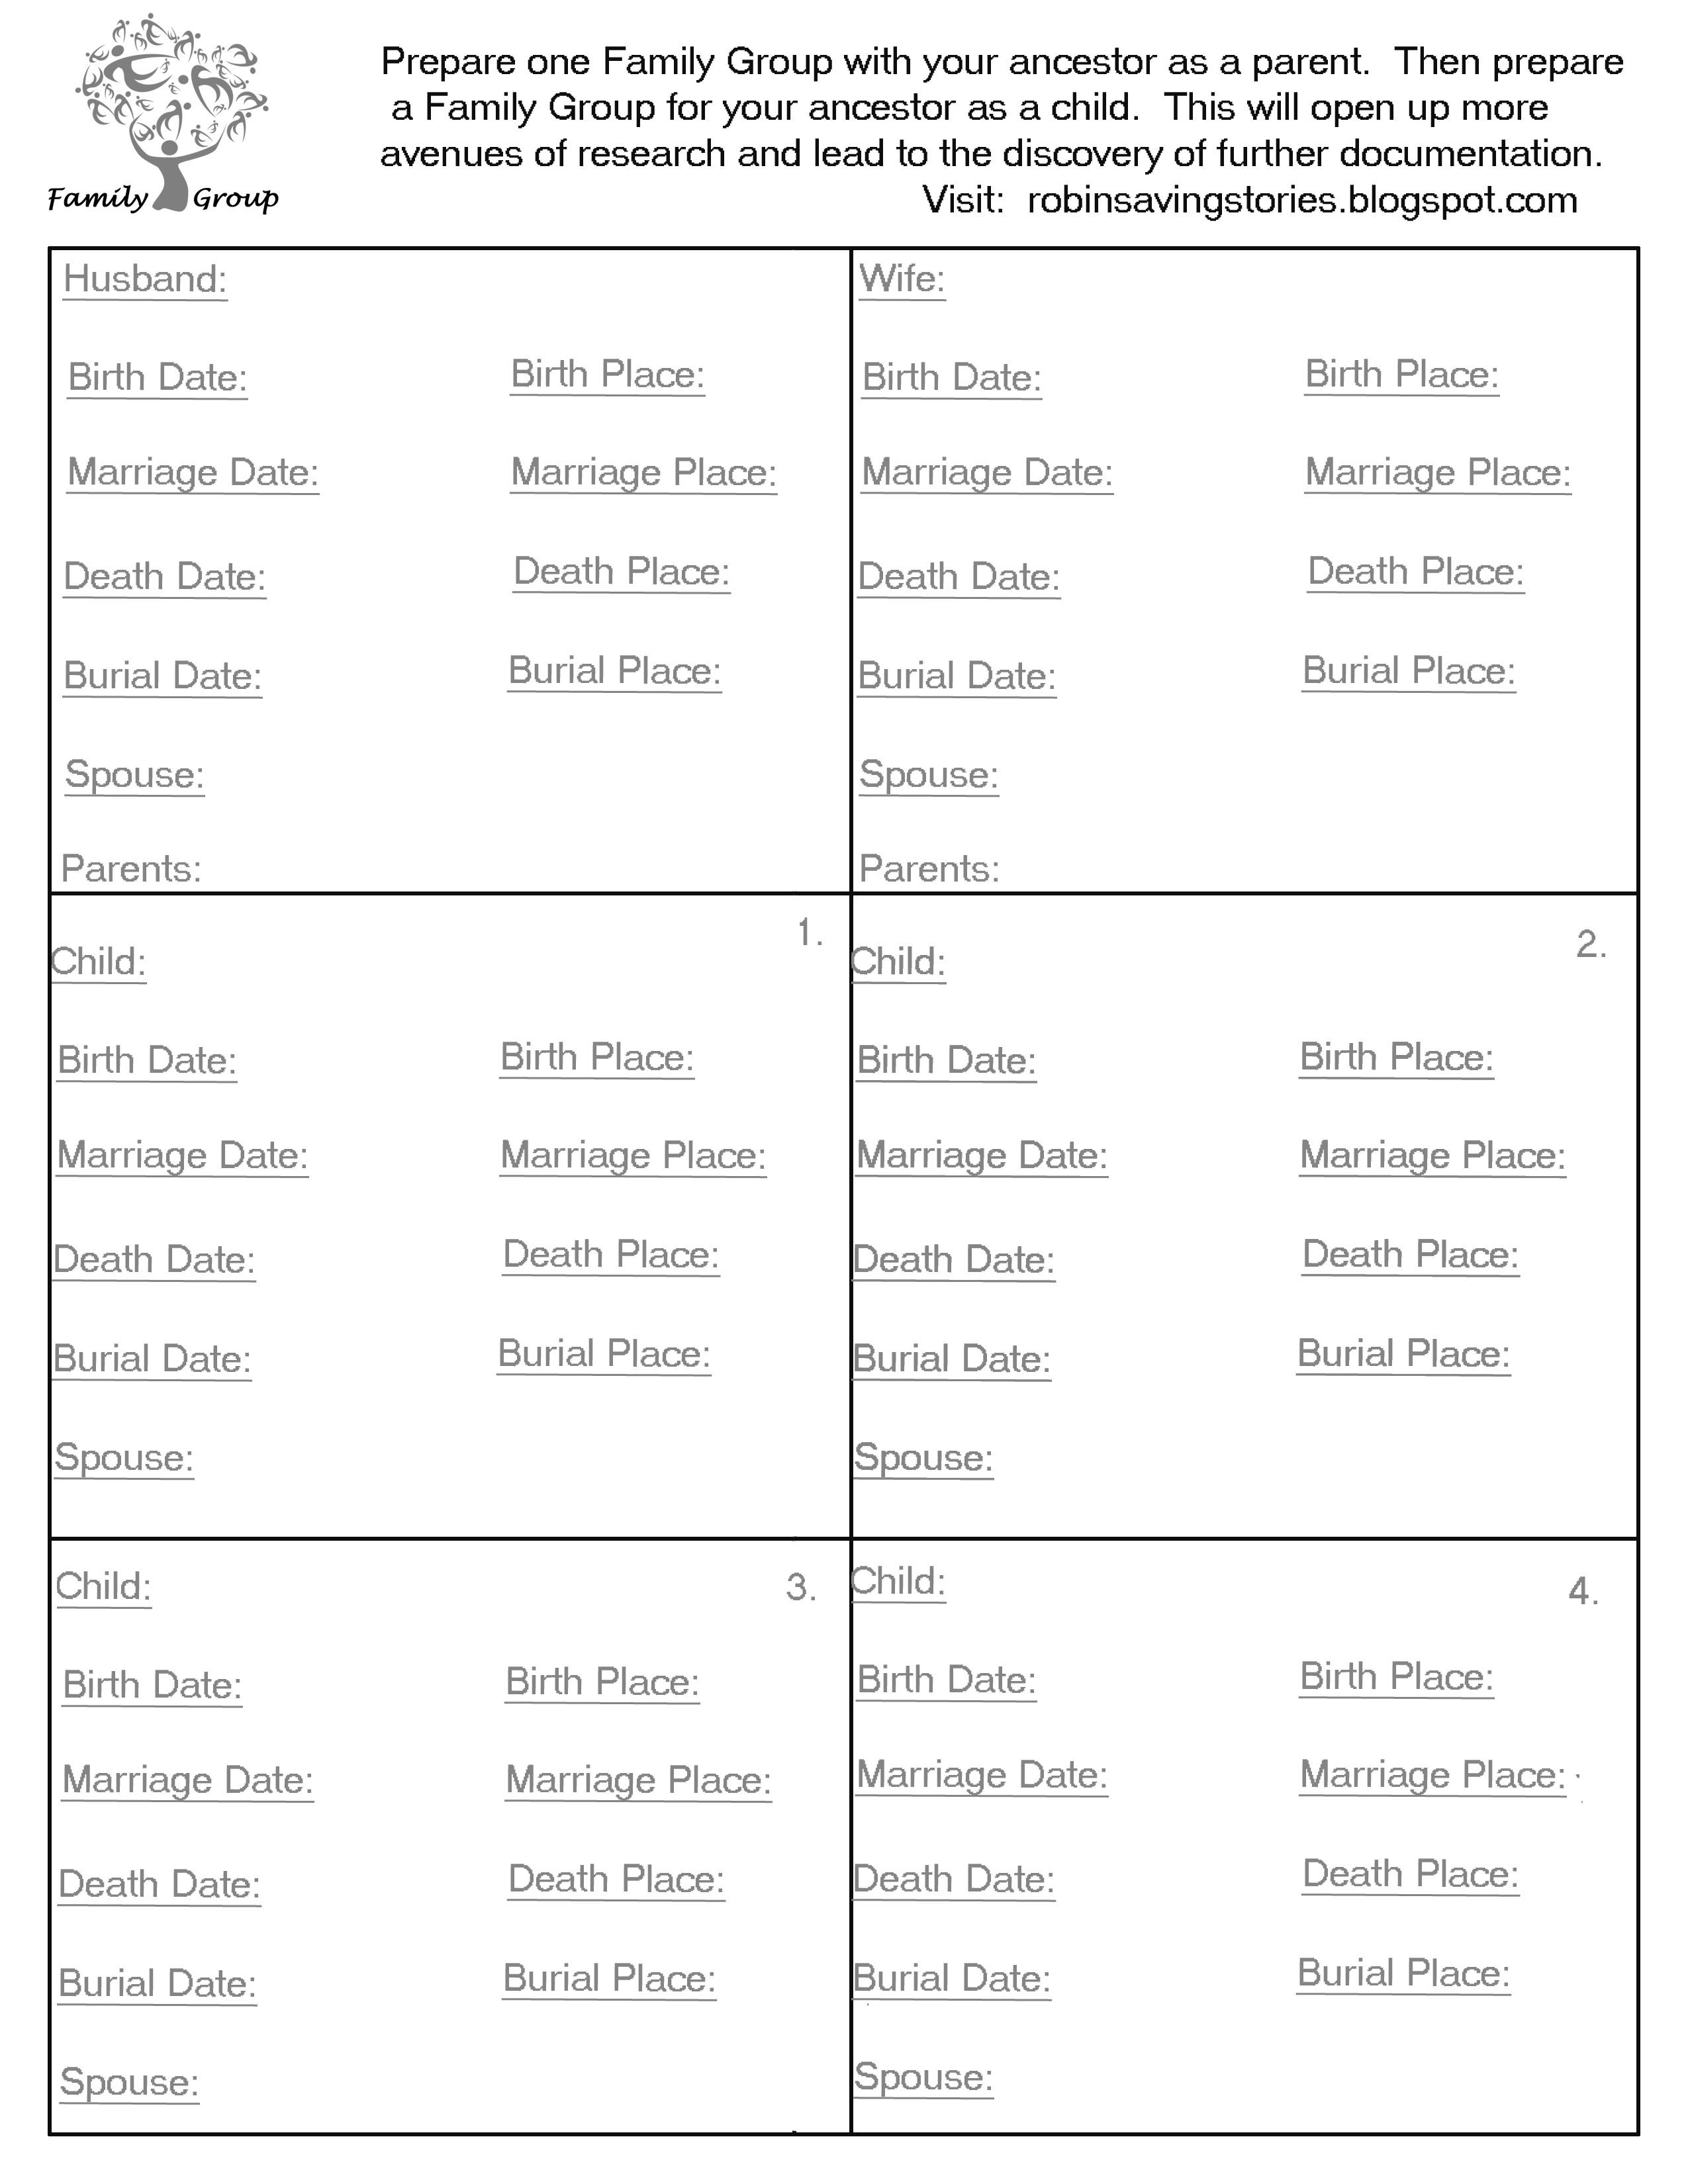 Free Family Group Sheet Prepare One With You Ancestor